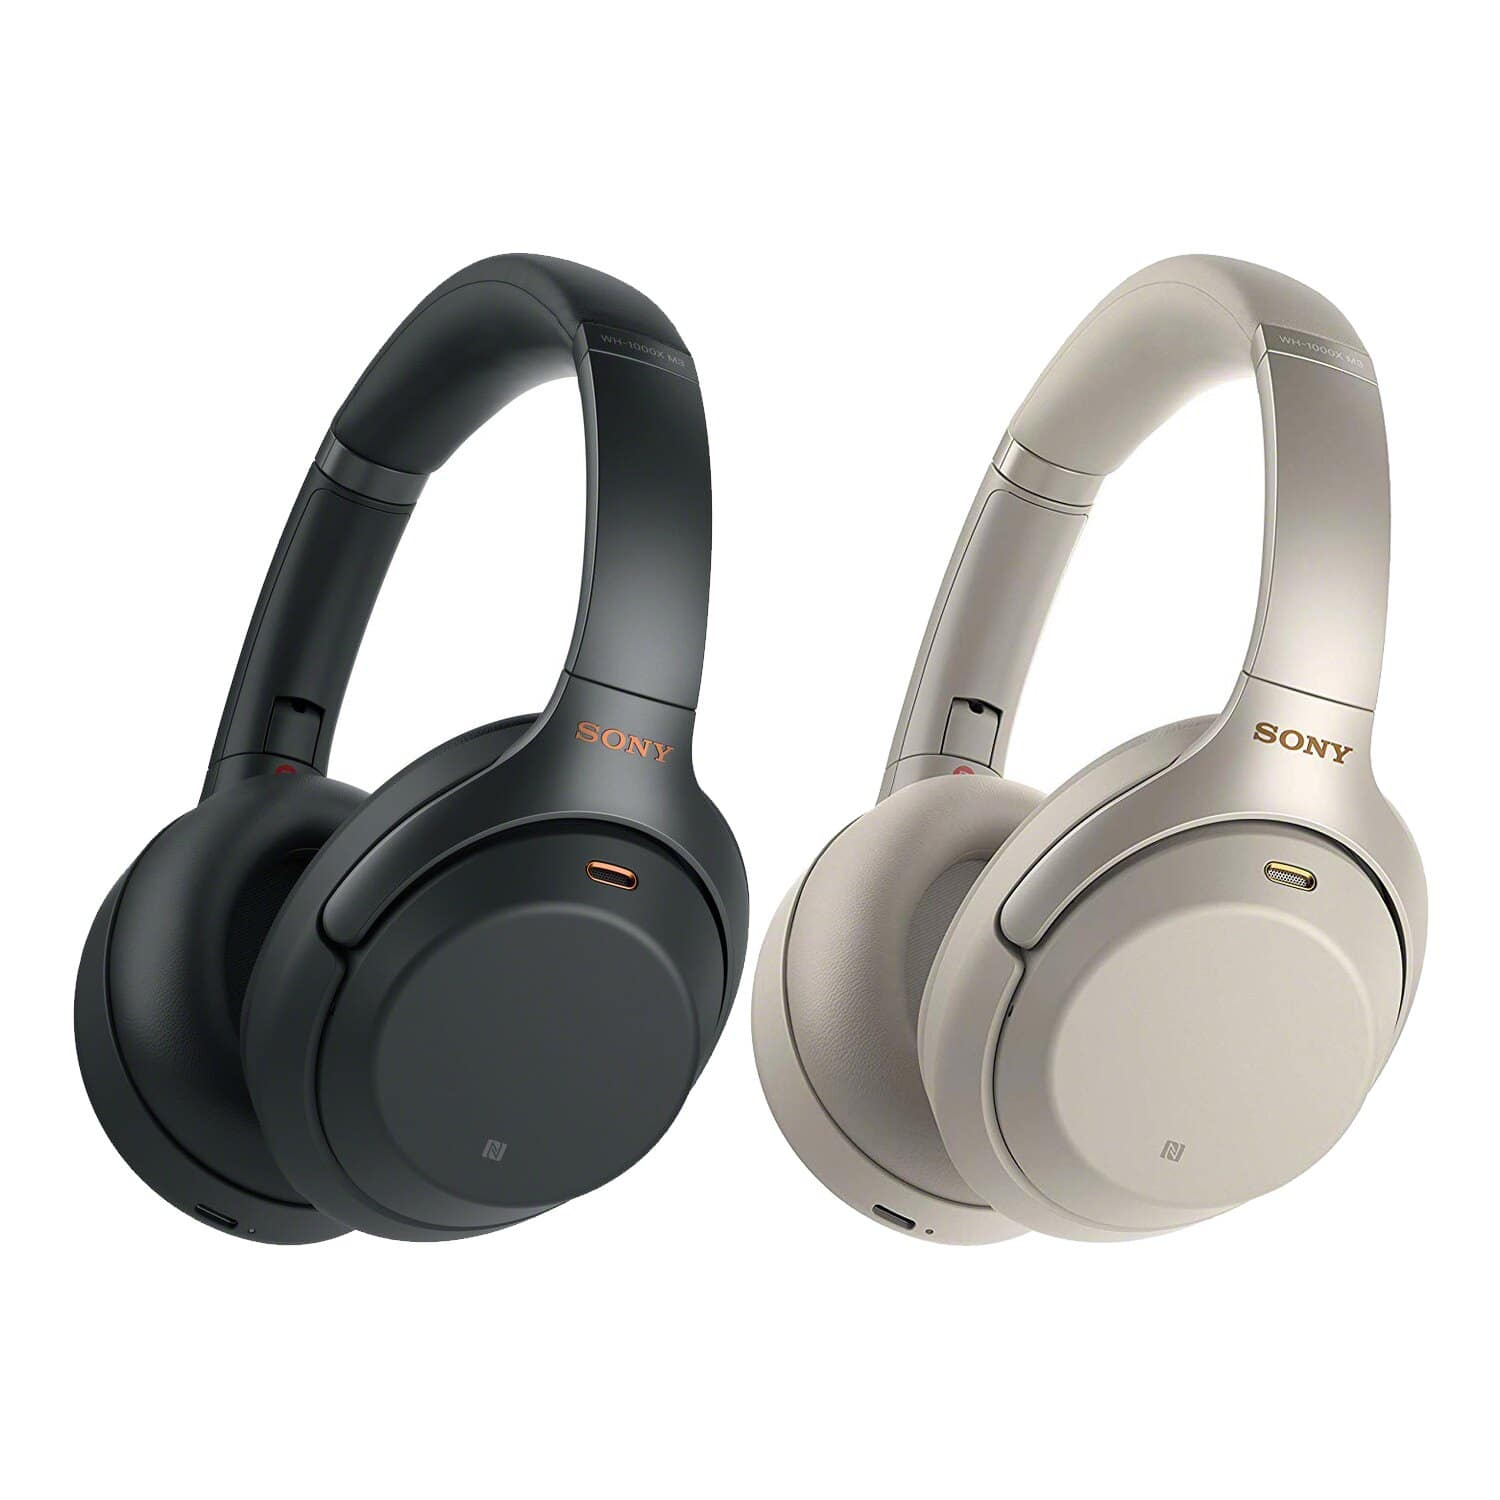 Sony WH-1000XM3 Bluetooth Noise Canceling Headphones (Silver & Black) $223 + Free Shipping